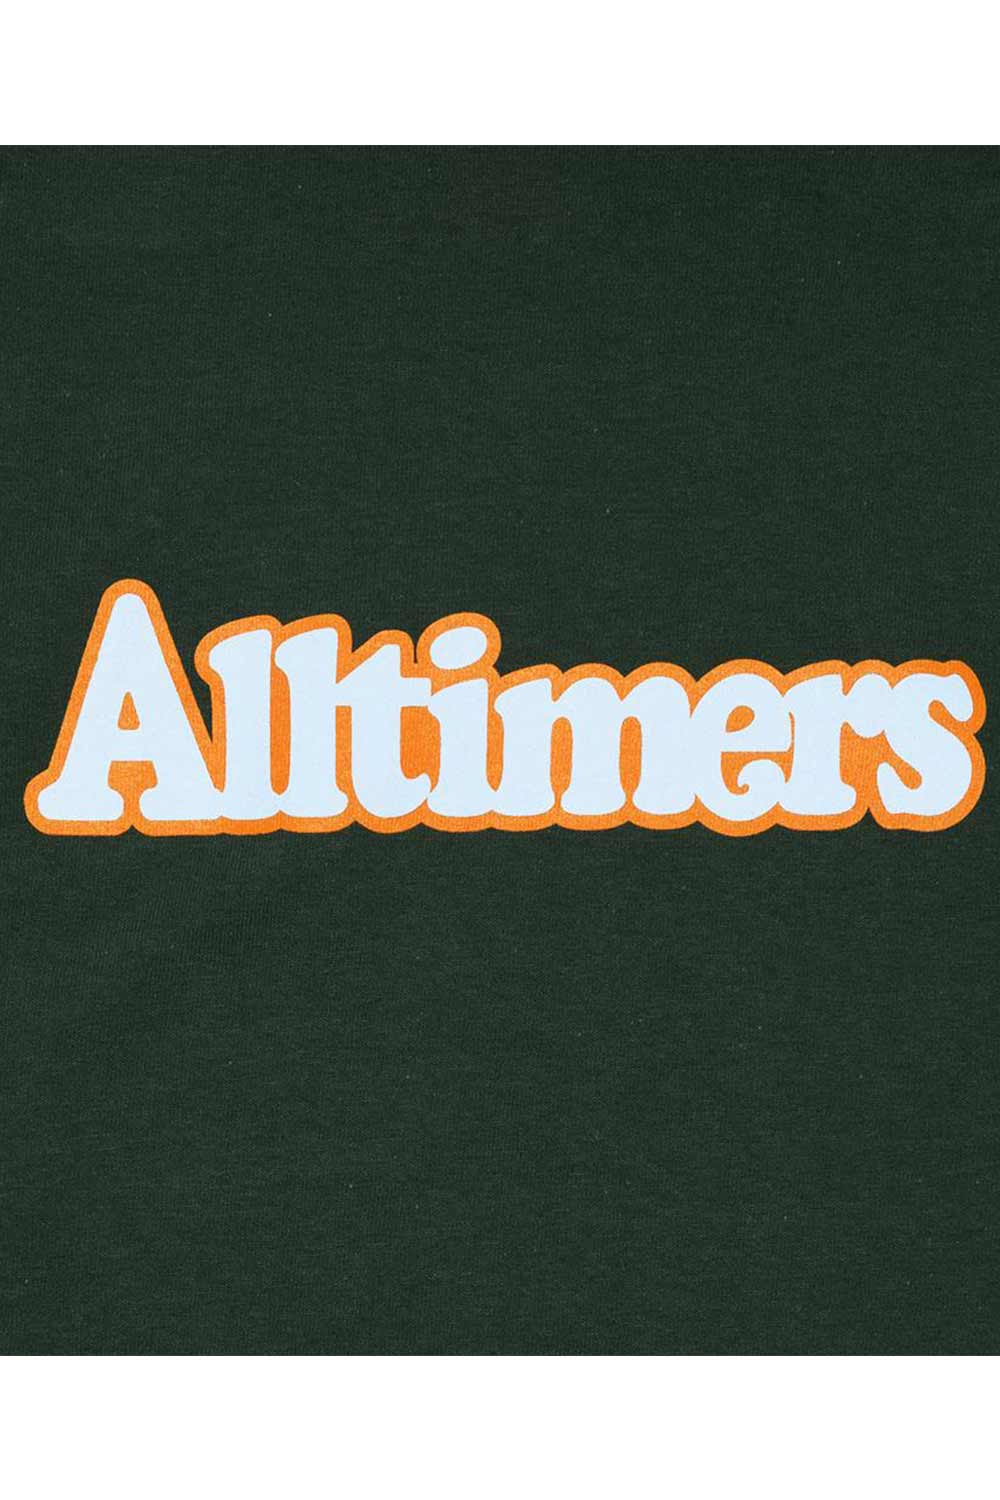 Alltimers Broadway Tee - Forest Green